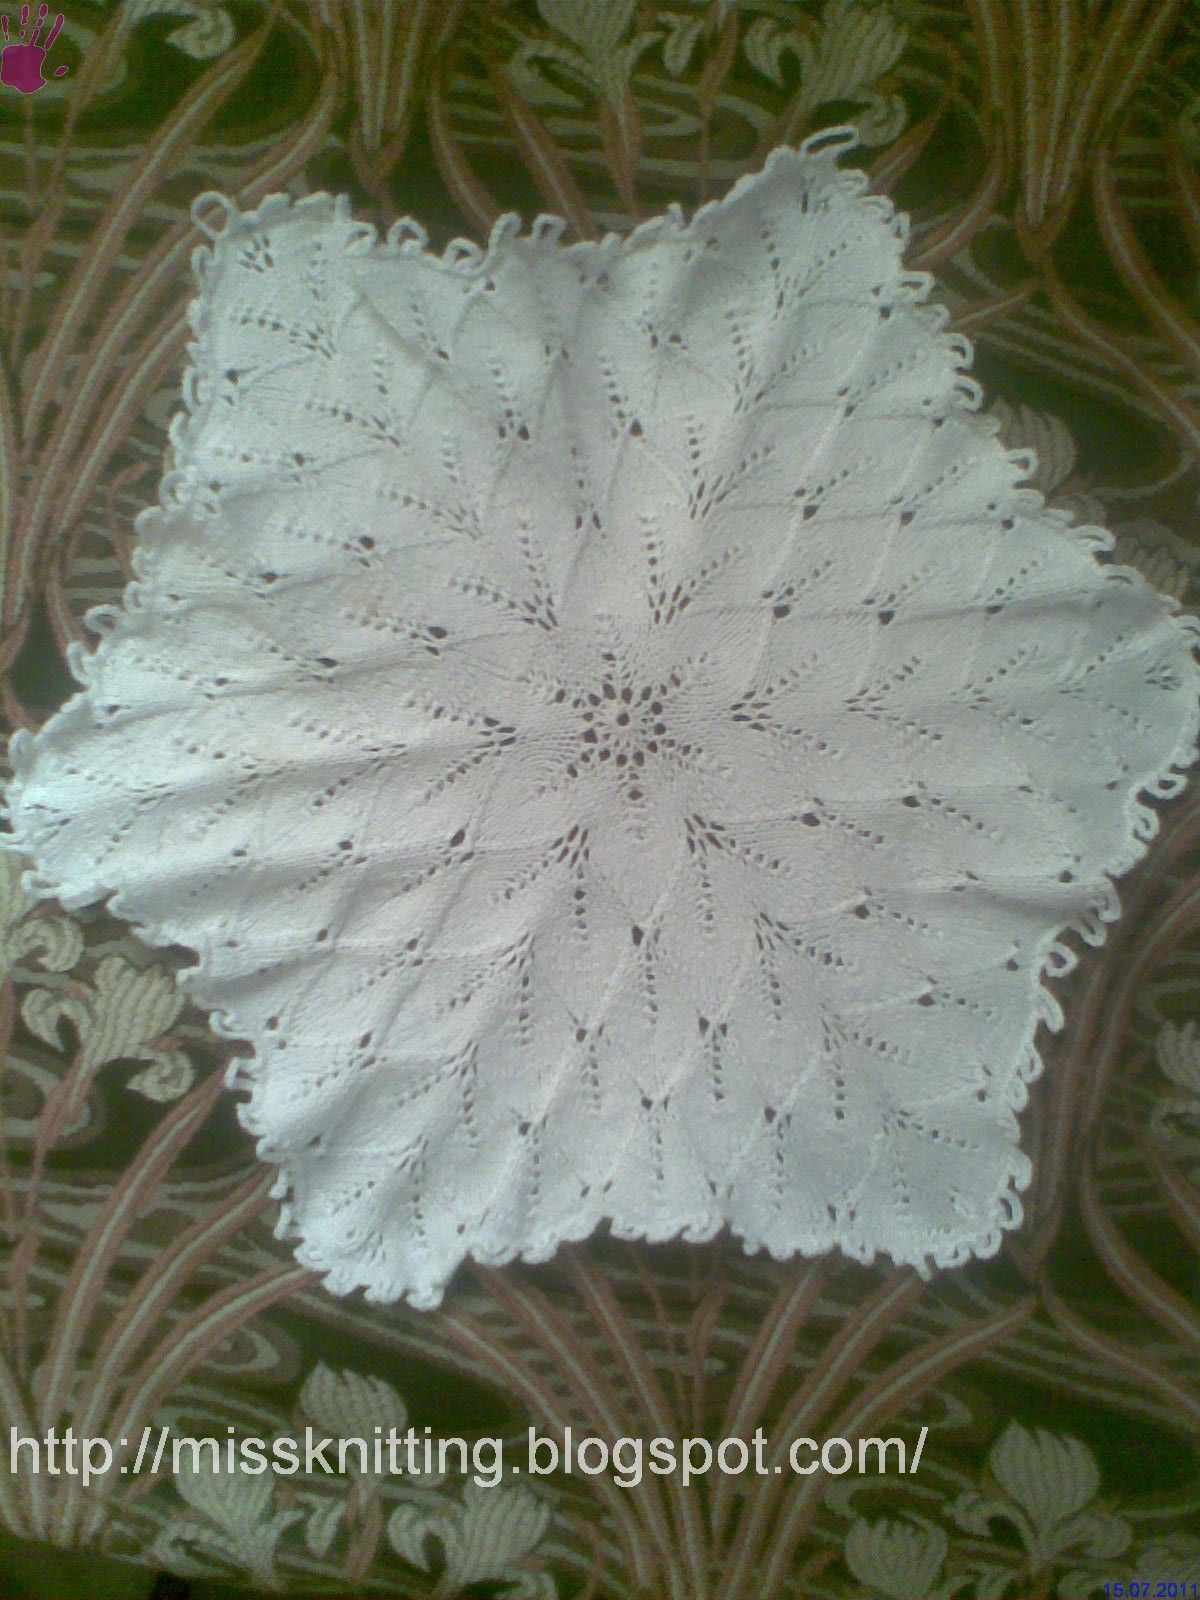 Miss Knitting: My second knitted doily